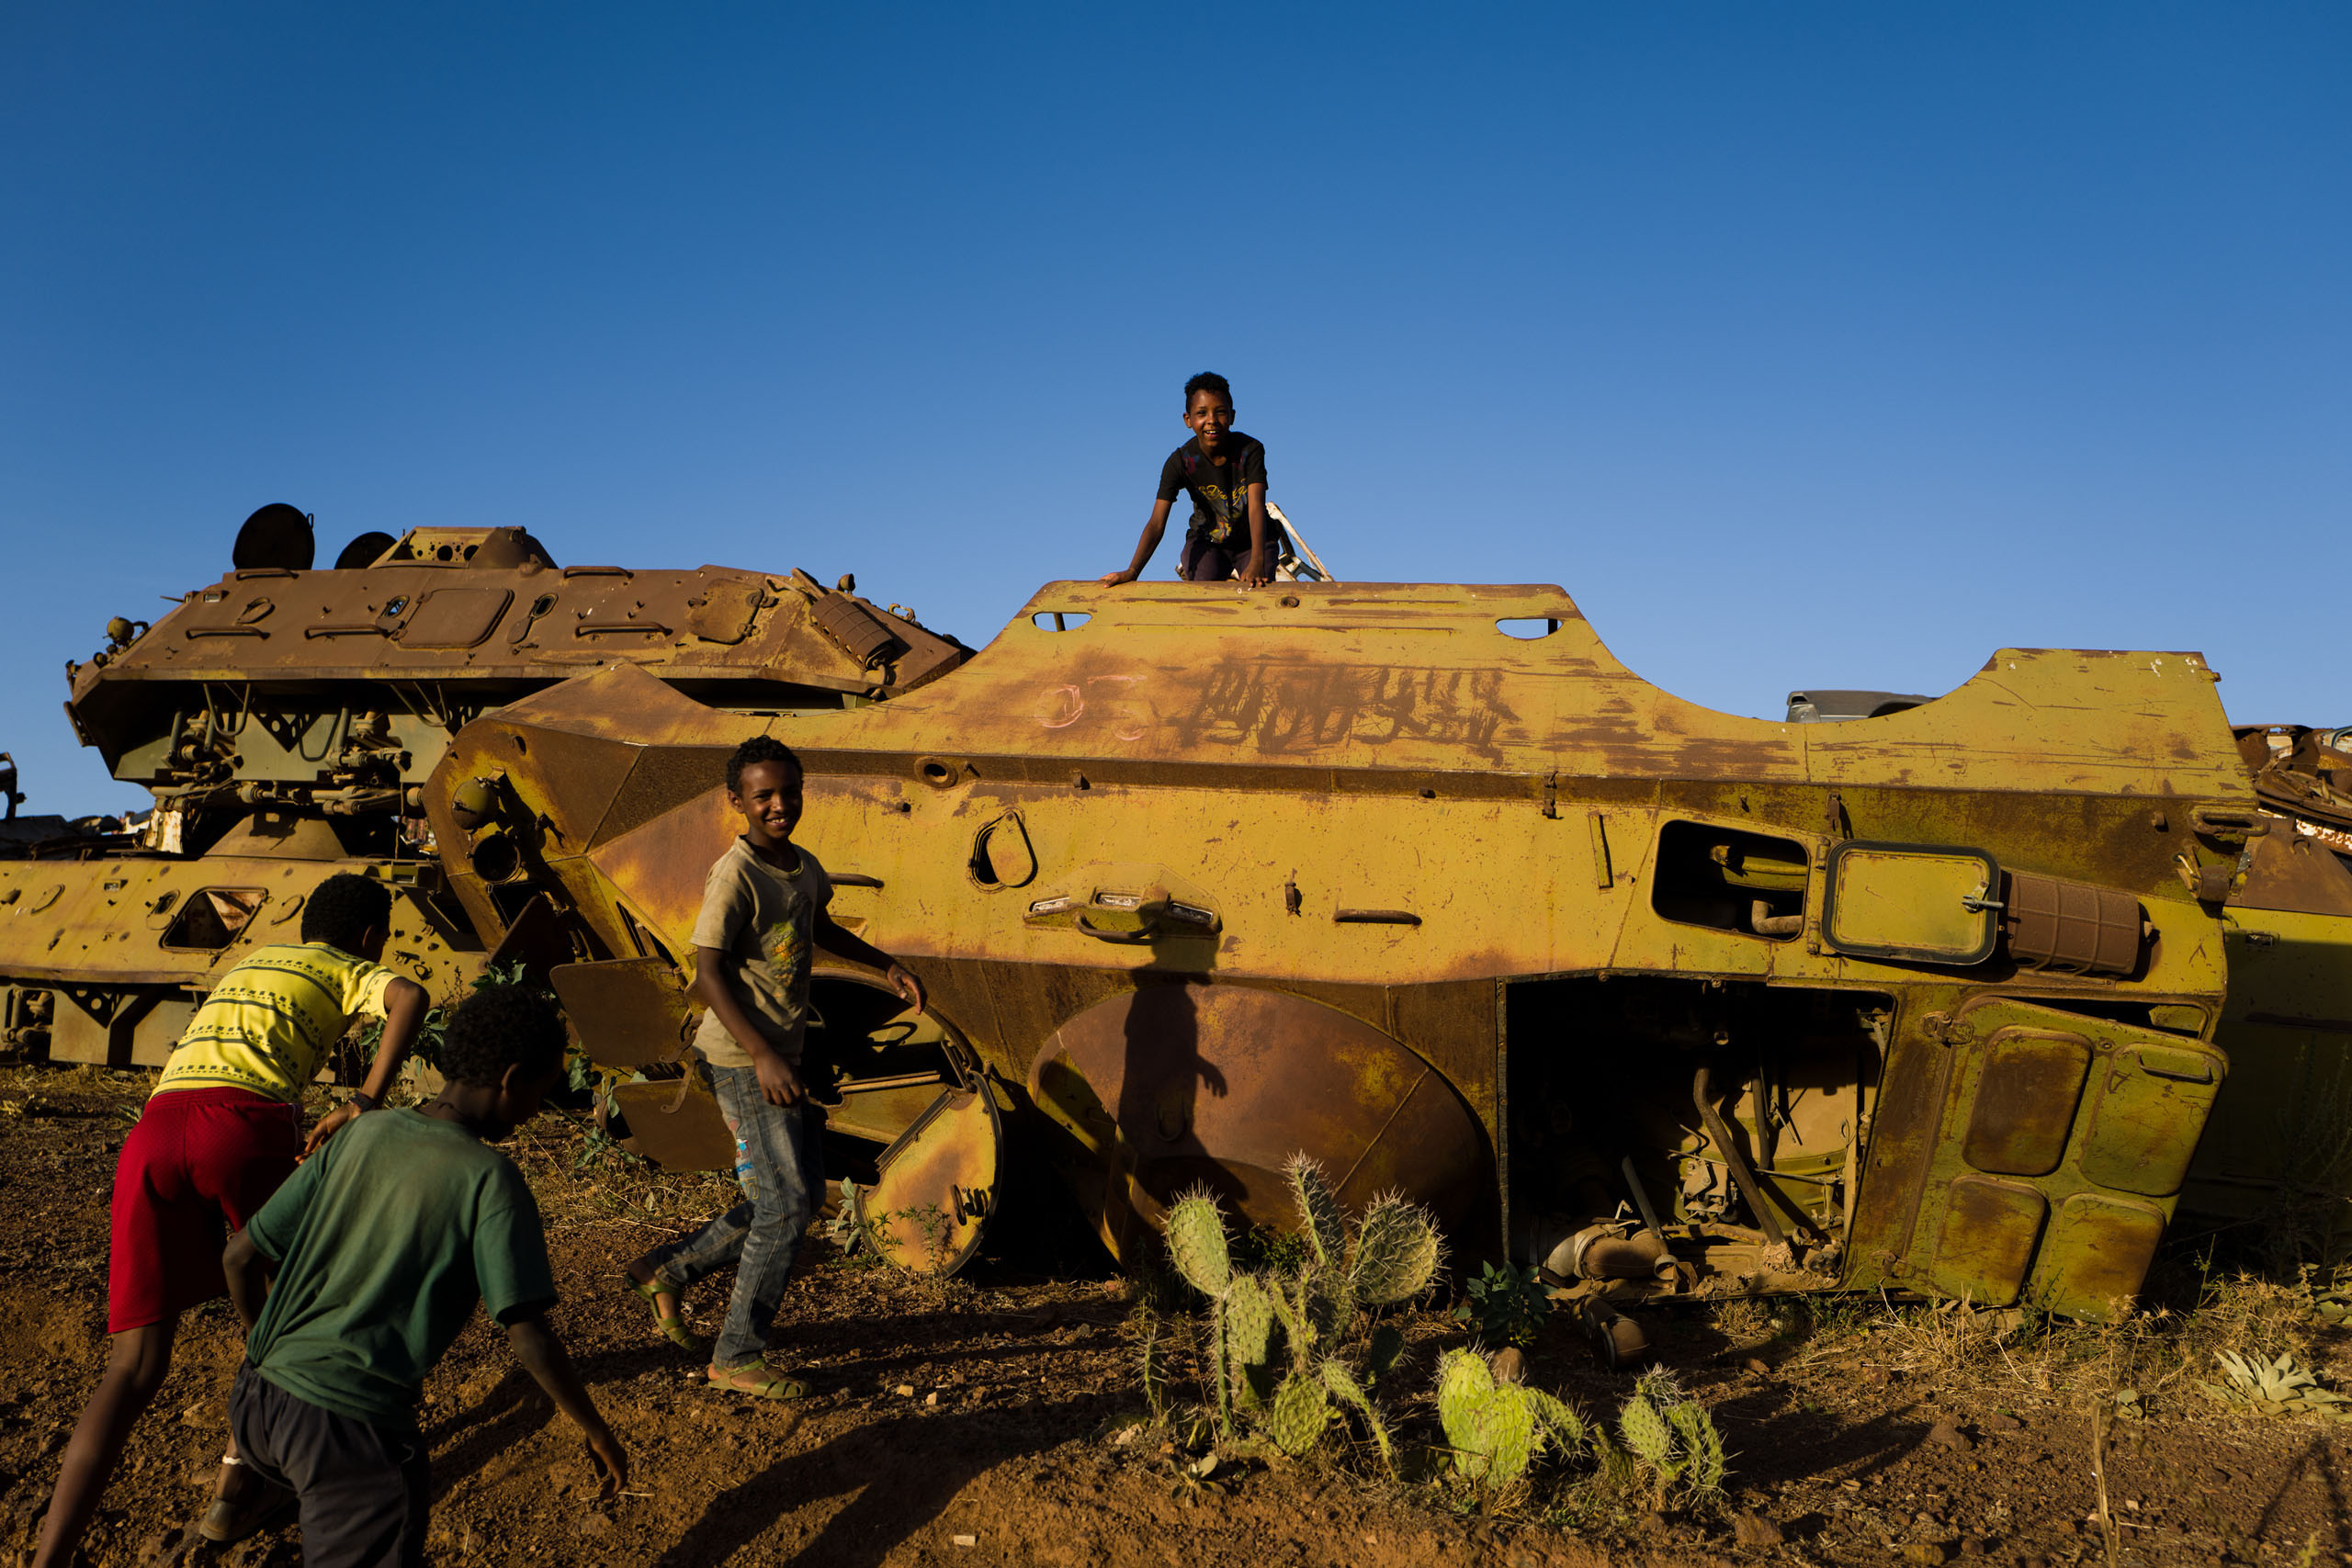 A  graveyard of military tanks and other relics of war in Asmara.